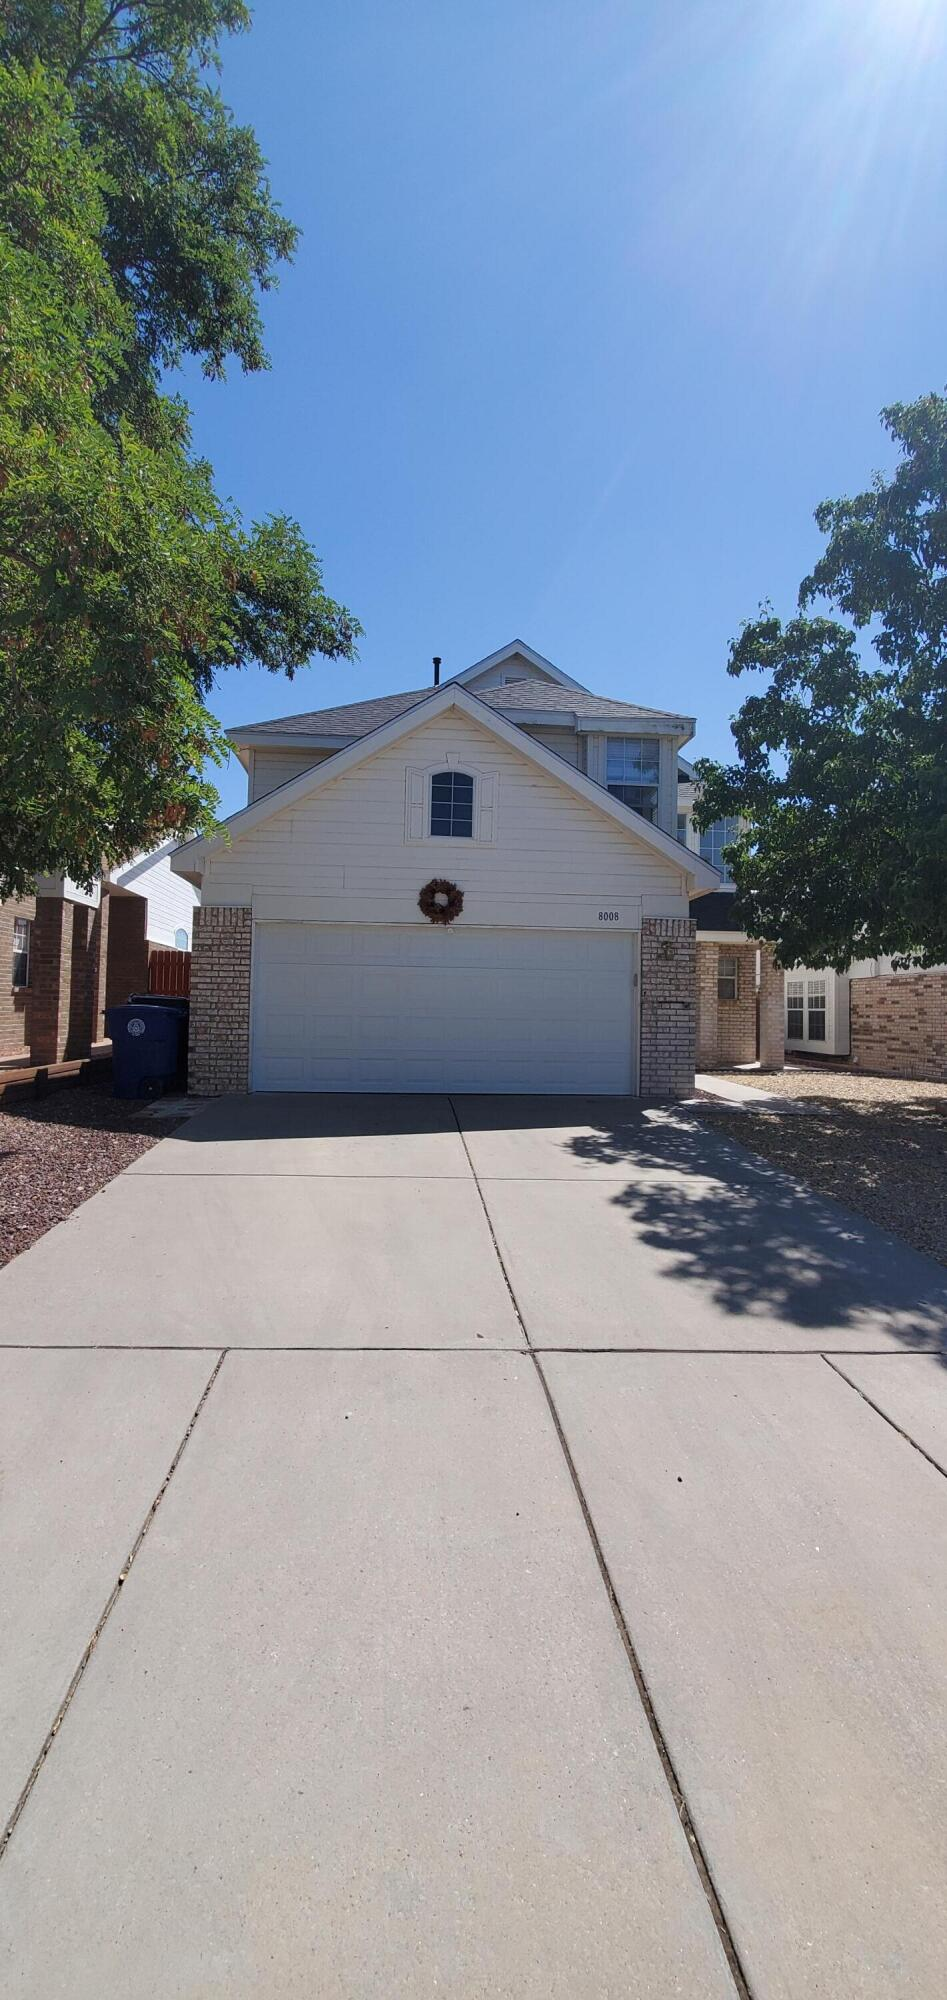 Welcome home to this beautiful home in the desirable La Cueva district! 3 bedrooms, all upstairs, 2.5 baths. Tons of natural light downstairs with clerestory windows! Raised ceiling in Living Room with gas log fireplace. Kitchen has all SS appliances plus Dining Room. Bedrooms all have walk in closets, large Master Bedroom with spacious Master Bath. Open patio in backyard! Updates in home include...New roof (June 2019) Don't wait!! Schedule your showing today. Title with Irene Lenard- Old Republic Title